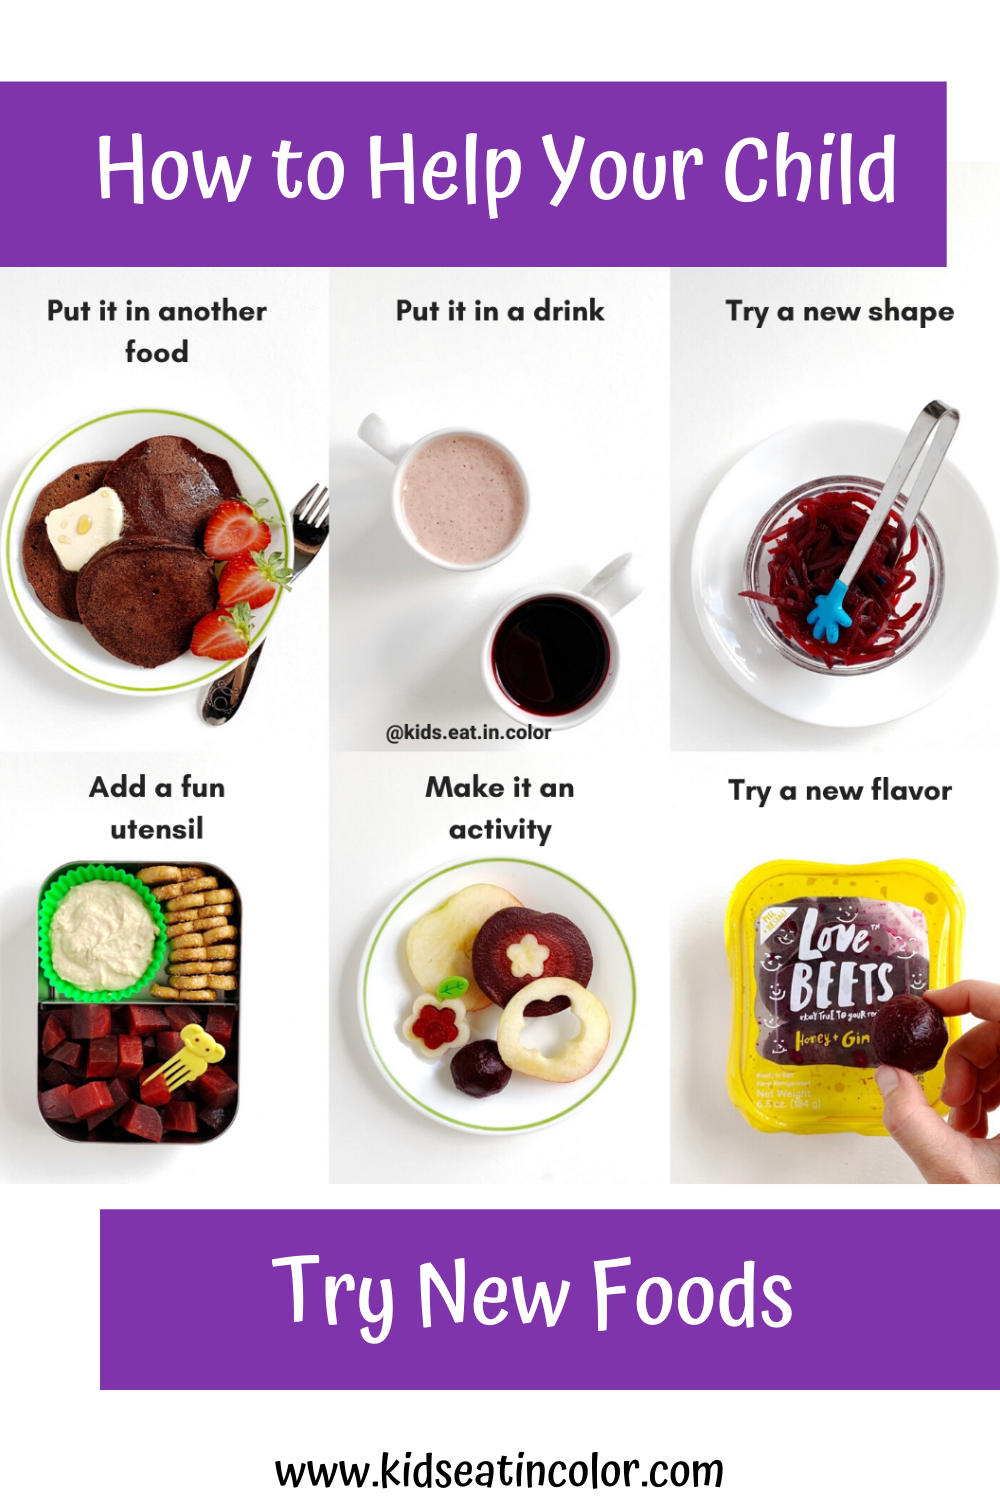 076ee89dfe3a45efdaa1ee0584b22d60 - How To Get My Picky Eater To Try New Foods